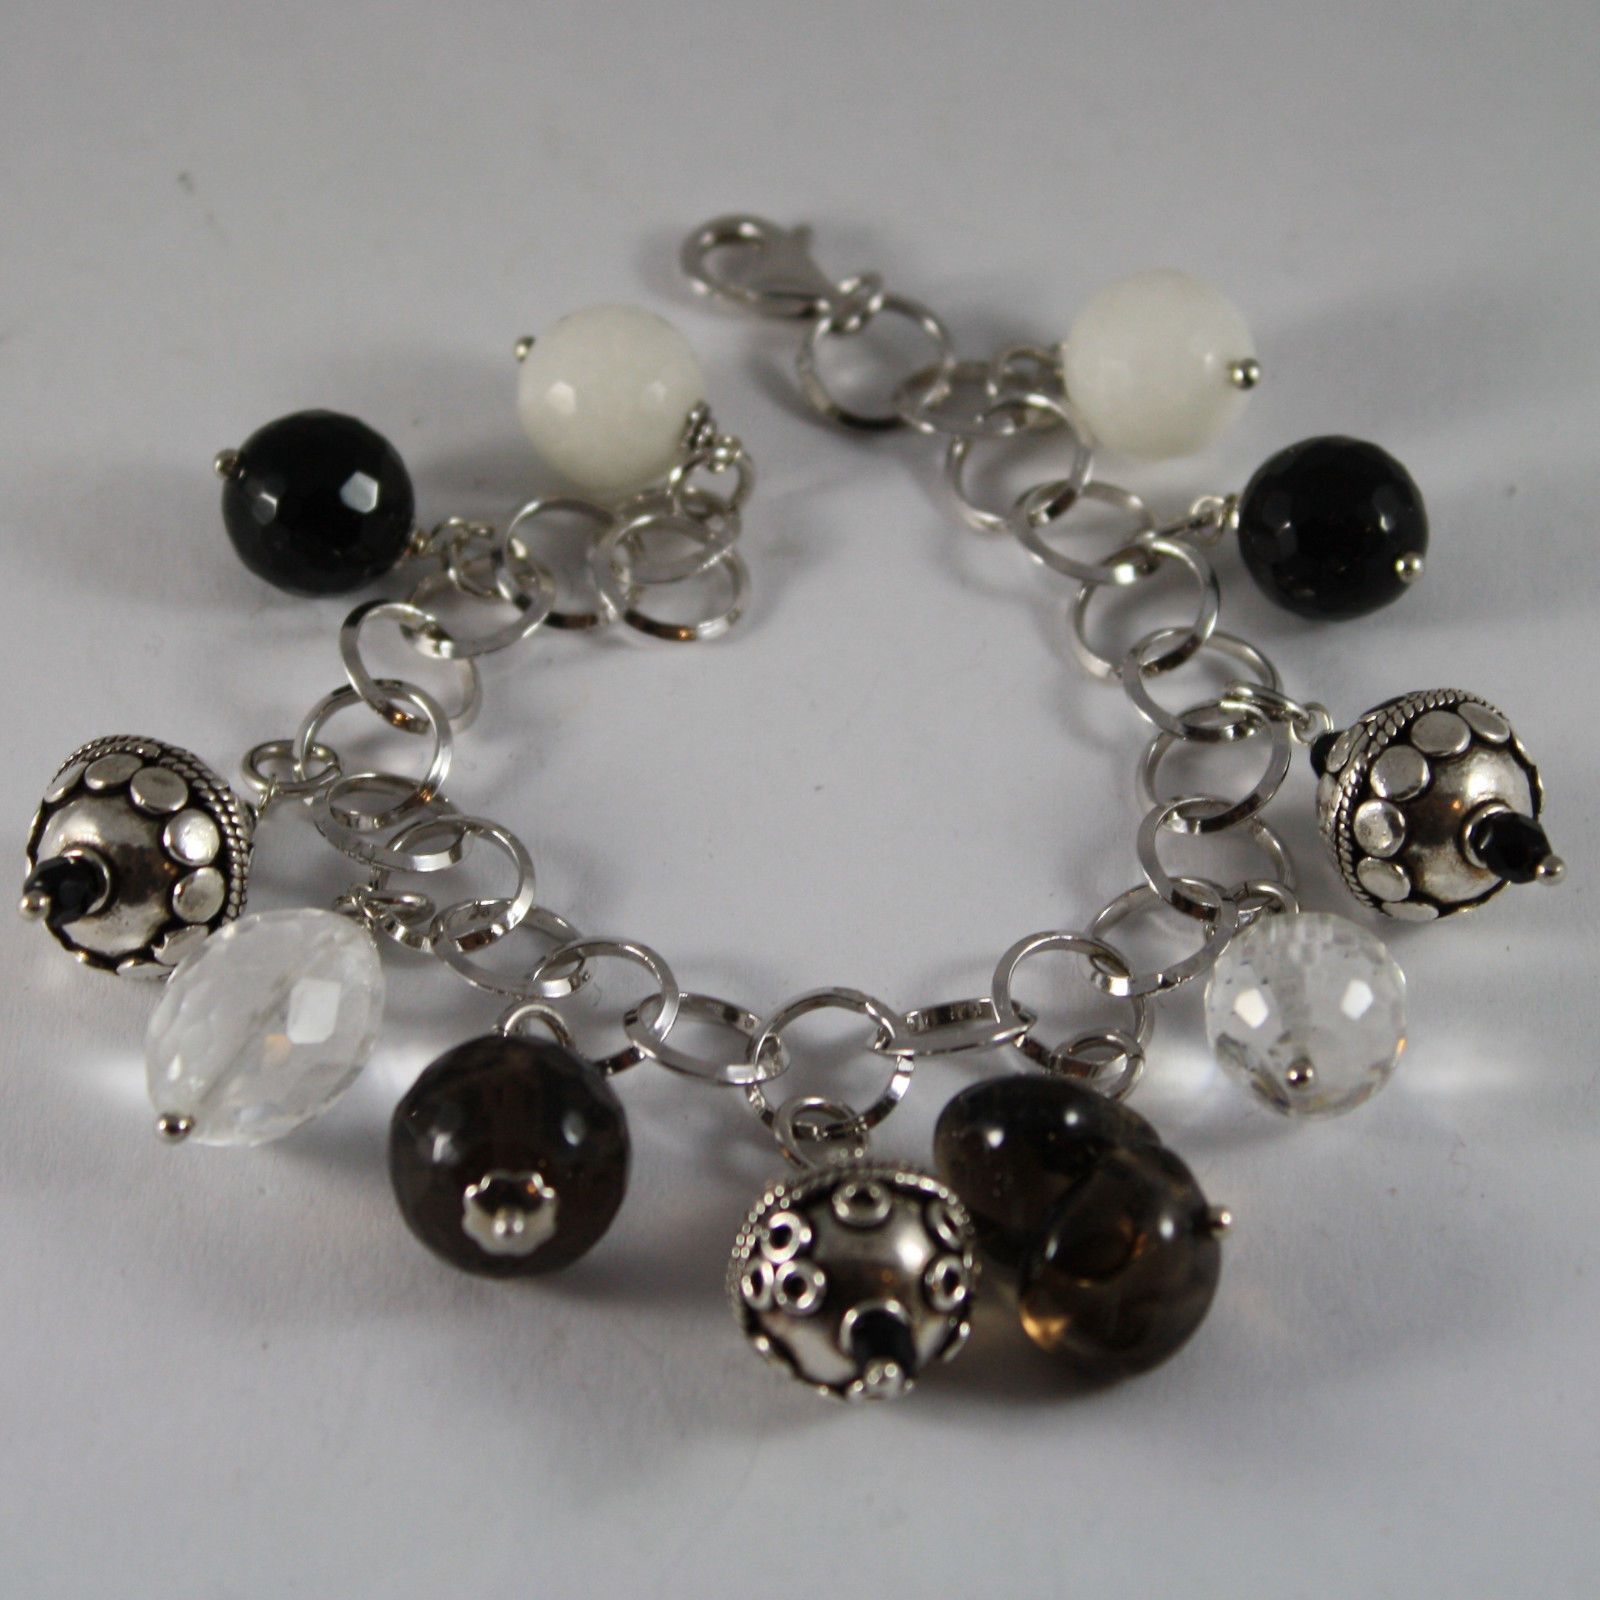 .925 RHODIUM SILVER BRACELET WITH BLACK ONYX, WHITE AGATE, SMOKY QUARTZ